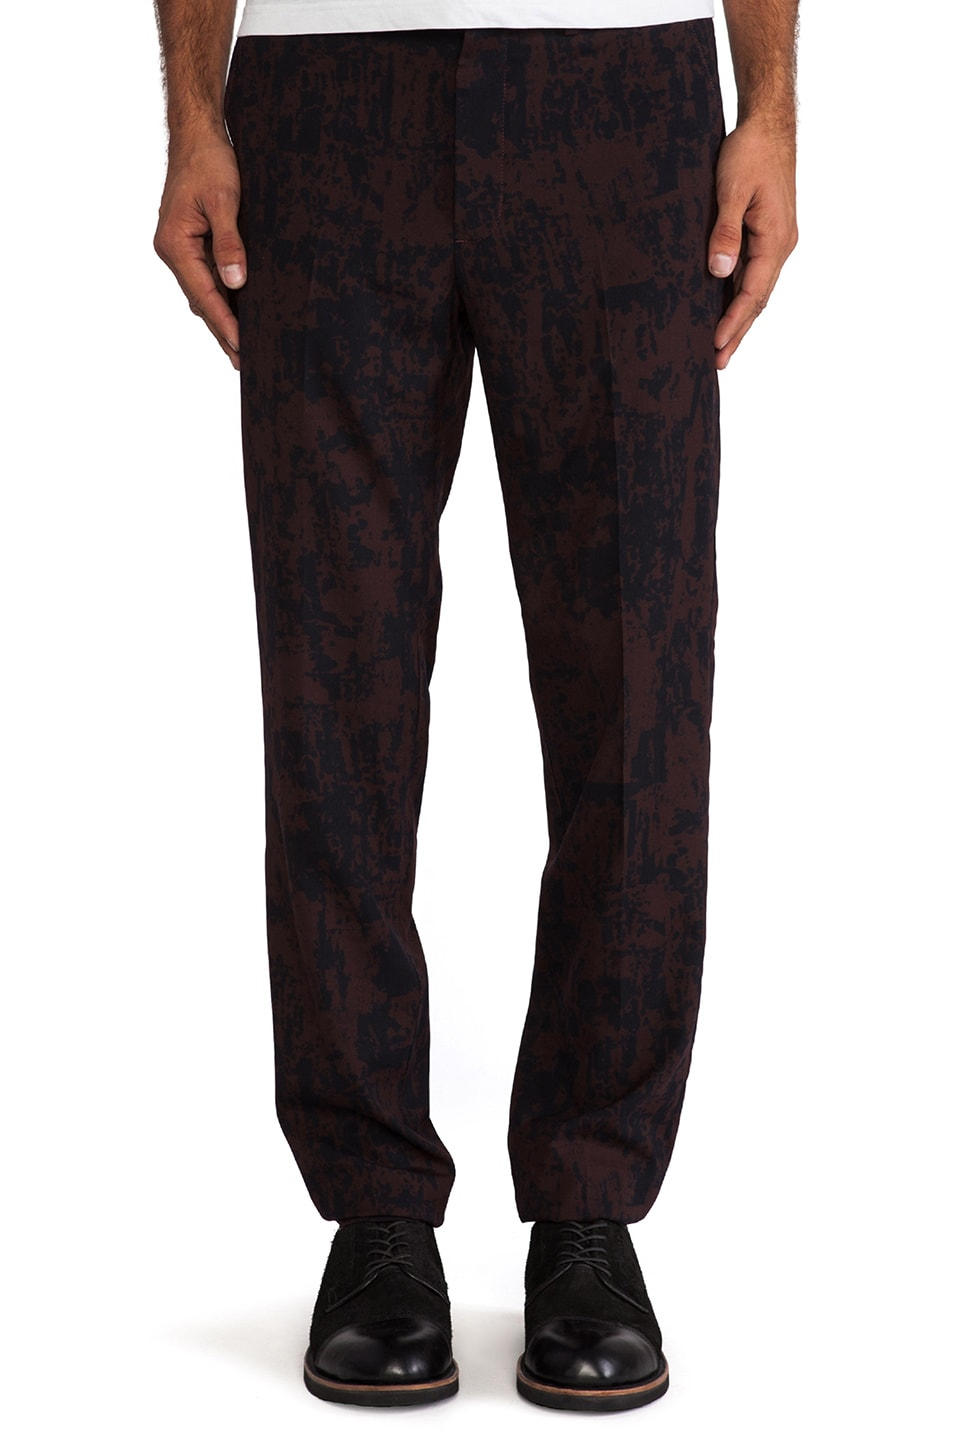 Marc by Marc Jacobs Sonny Suiting Pant in Deep Beet Multi